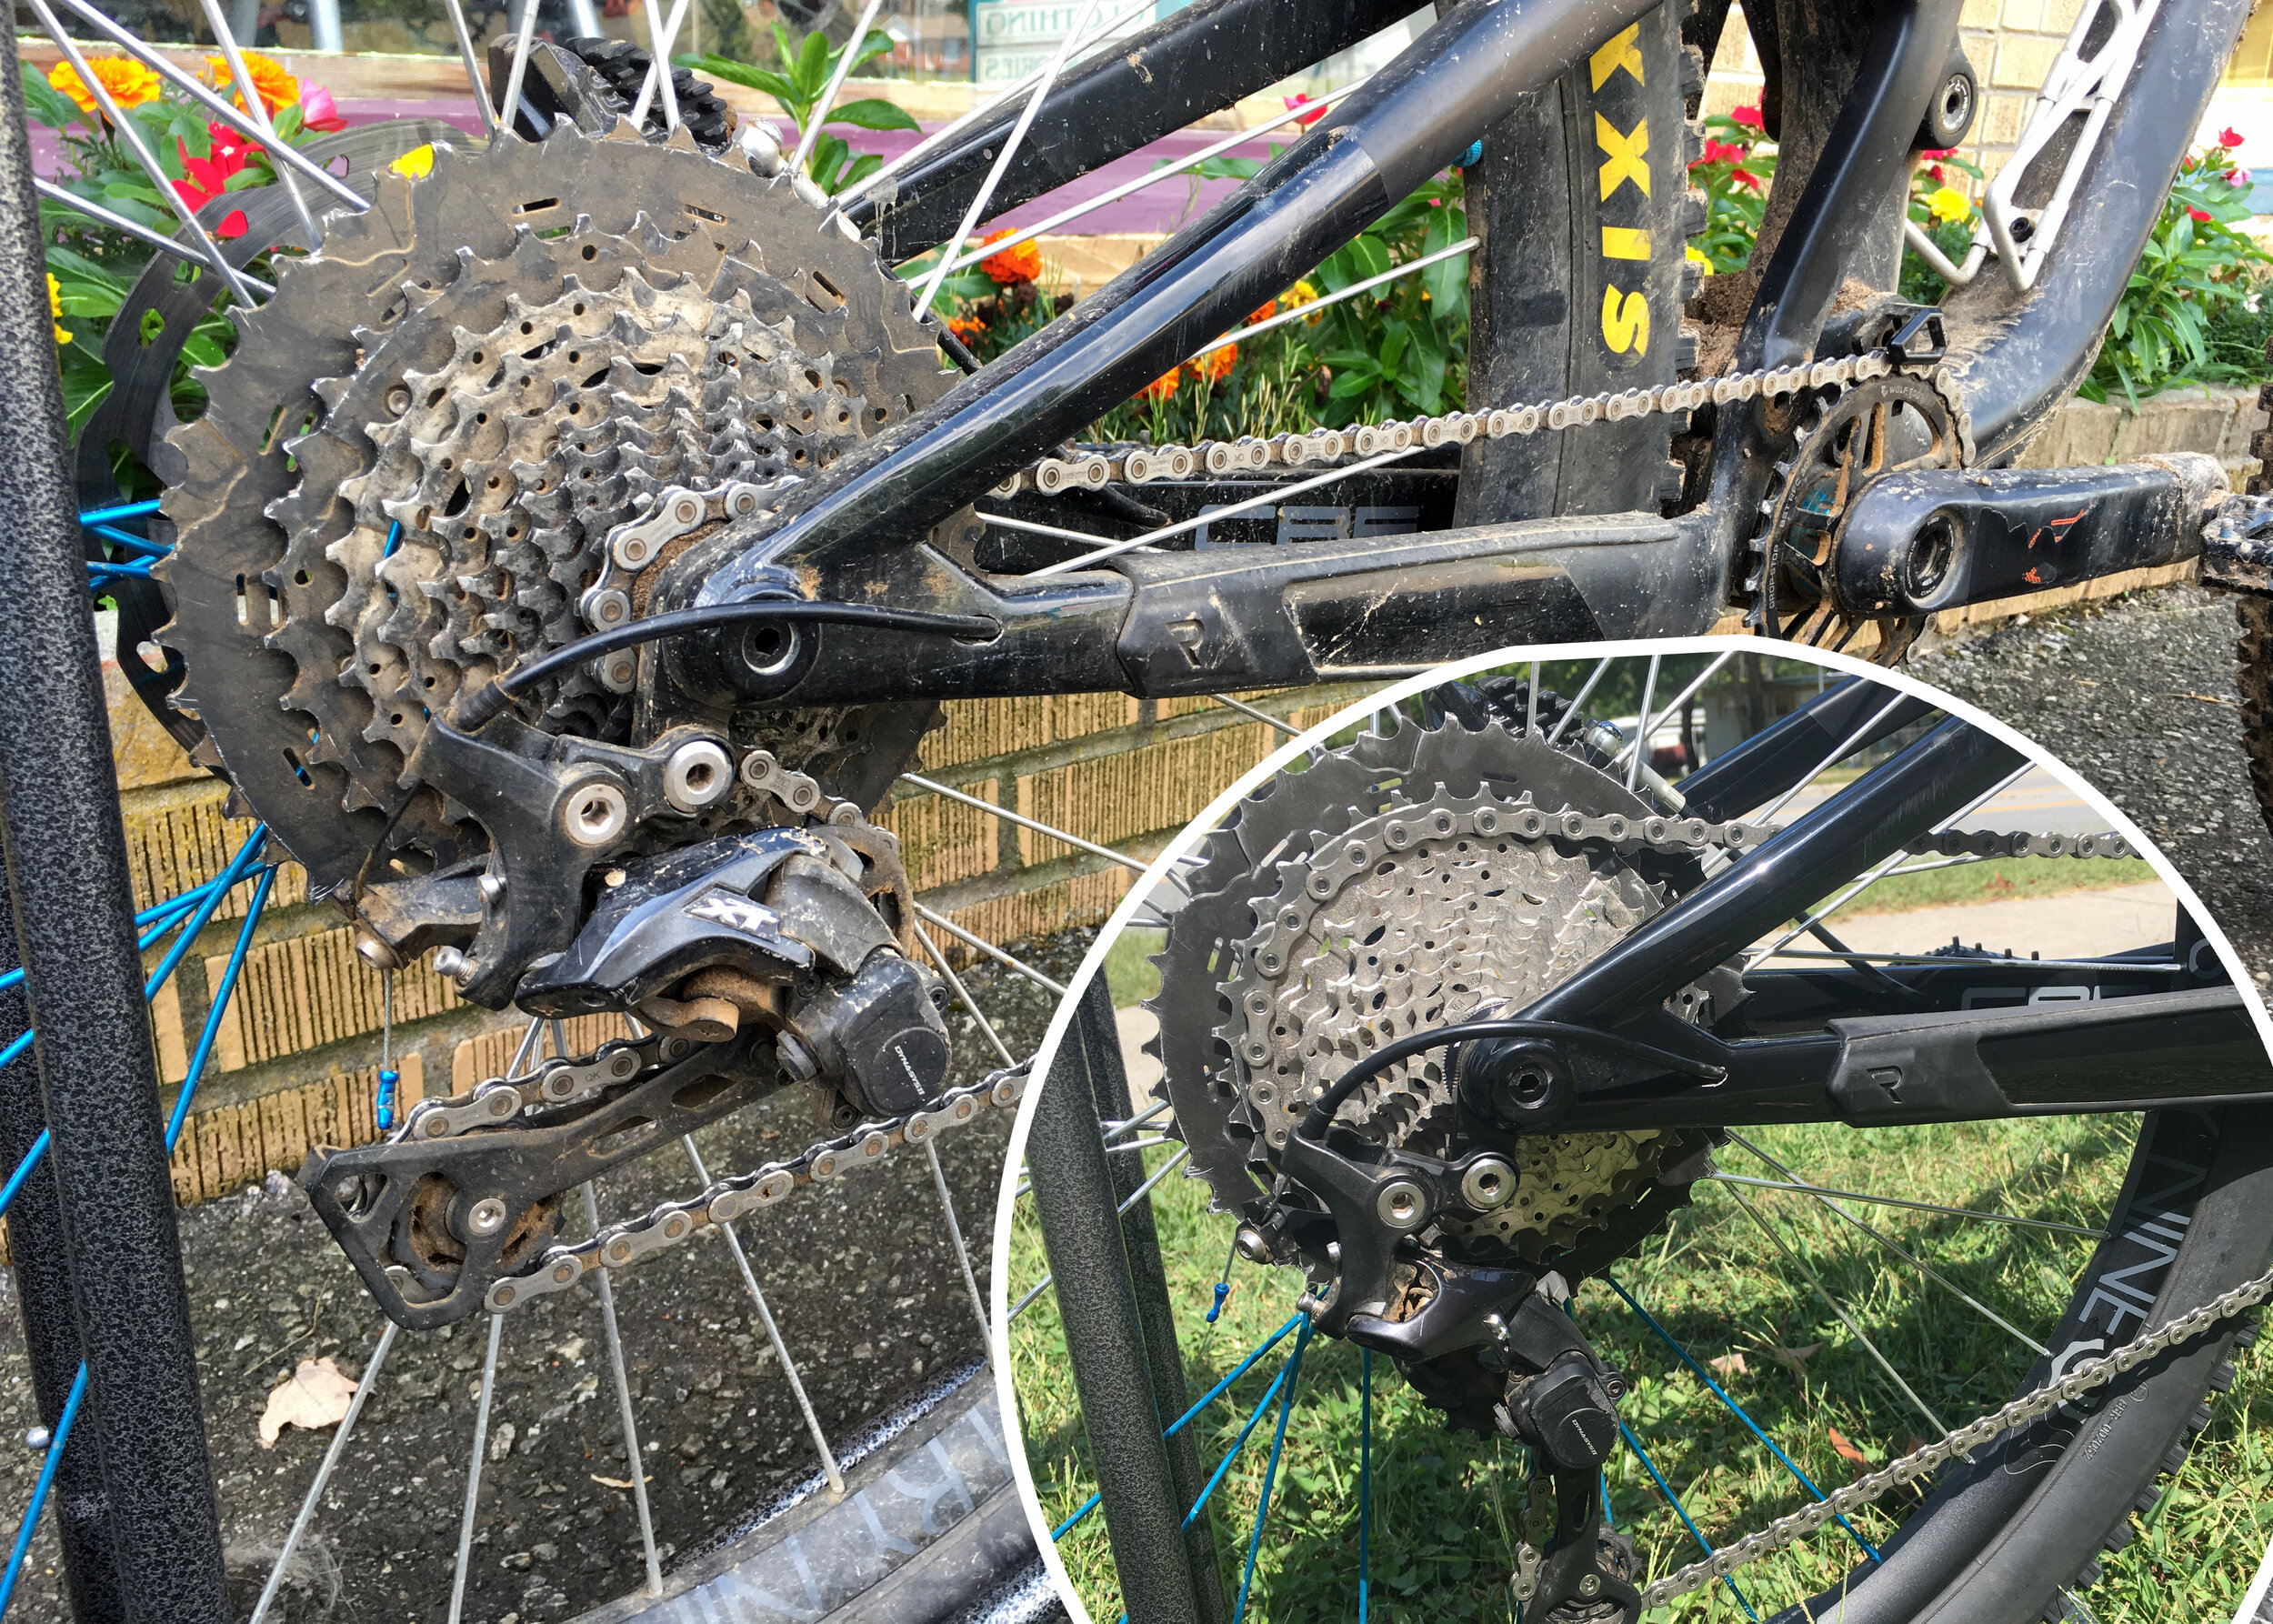 Add some extra miles to your components - we offer a range of tune-ups to keep your bike running smooth.